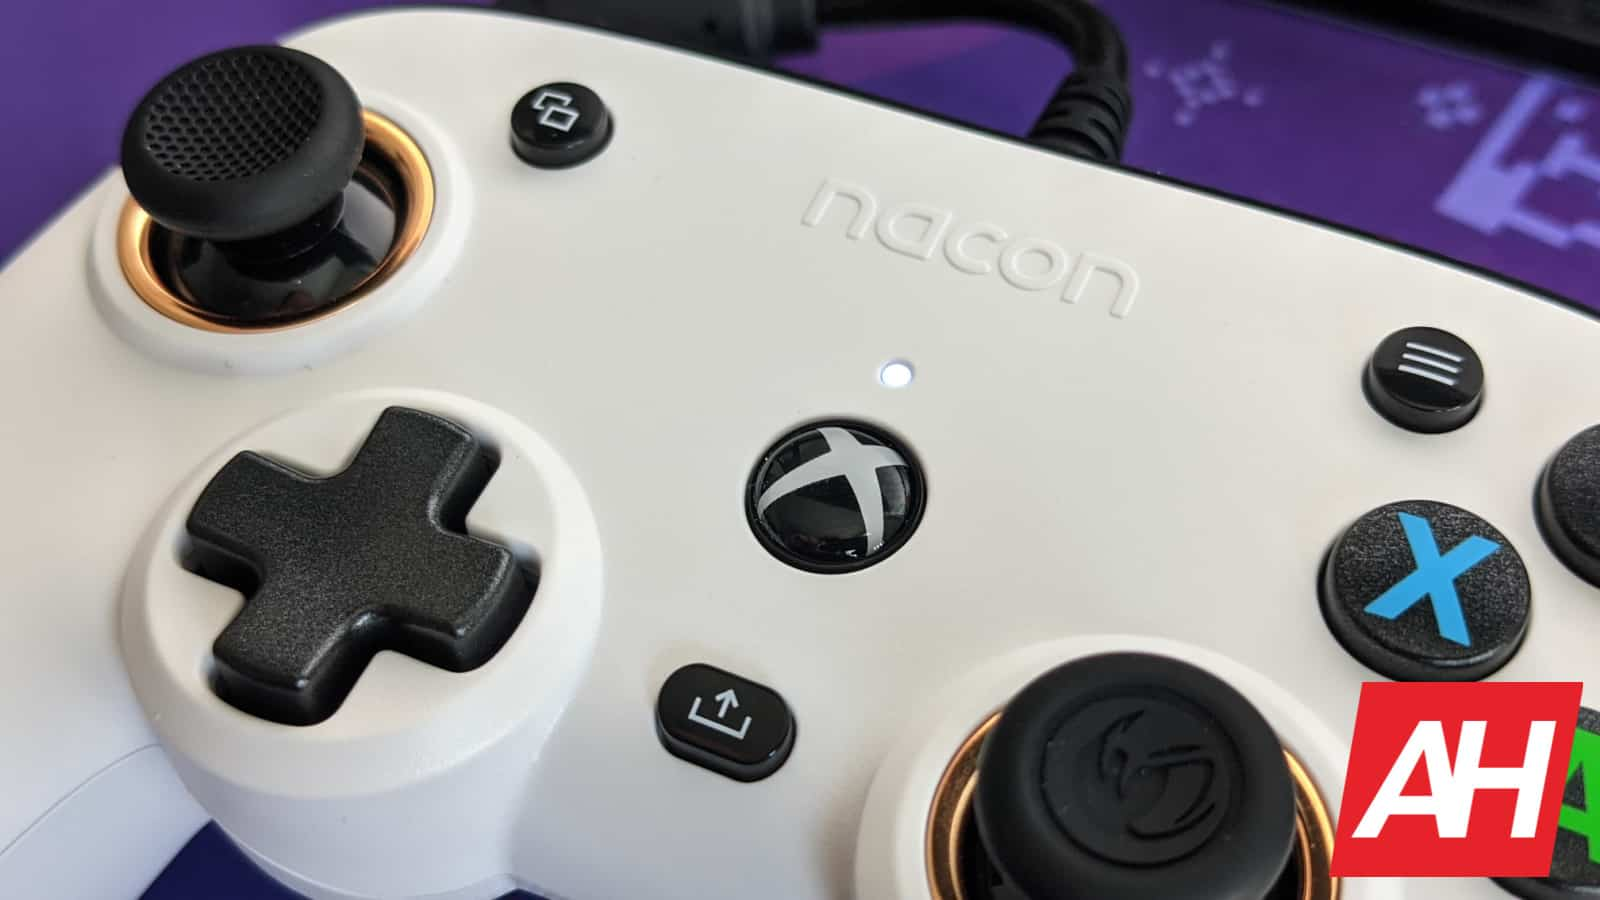 RIG Pro Compact Review 5